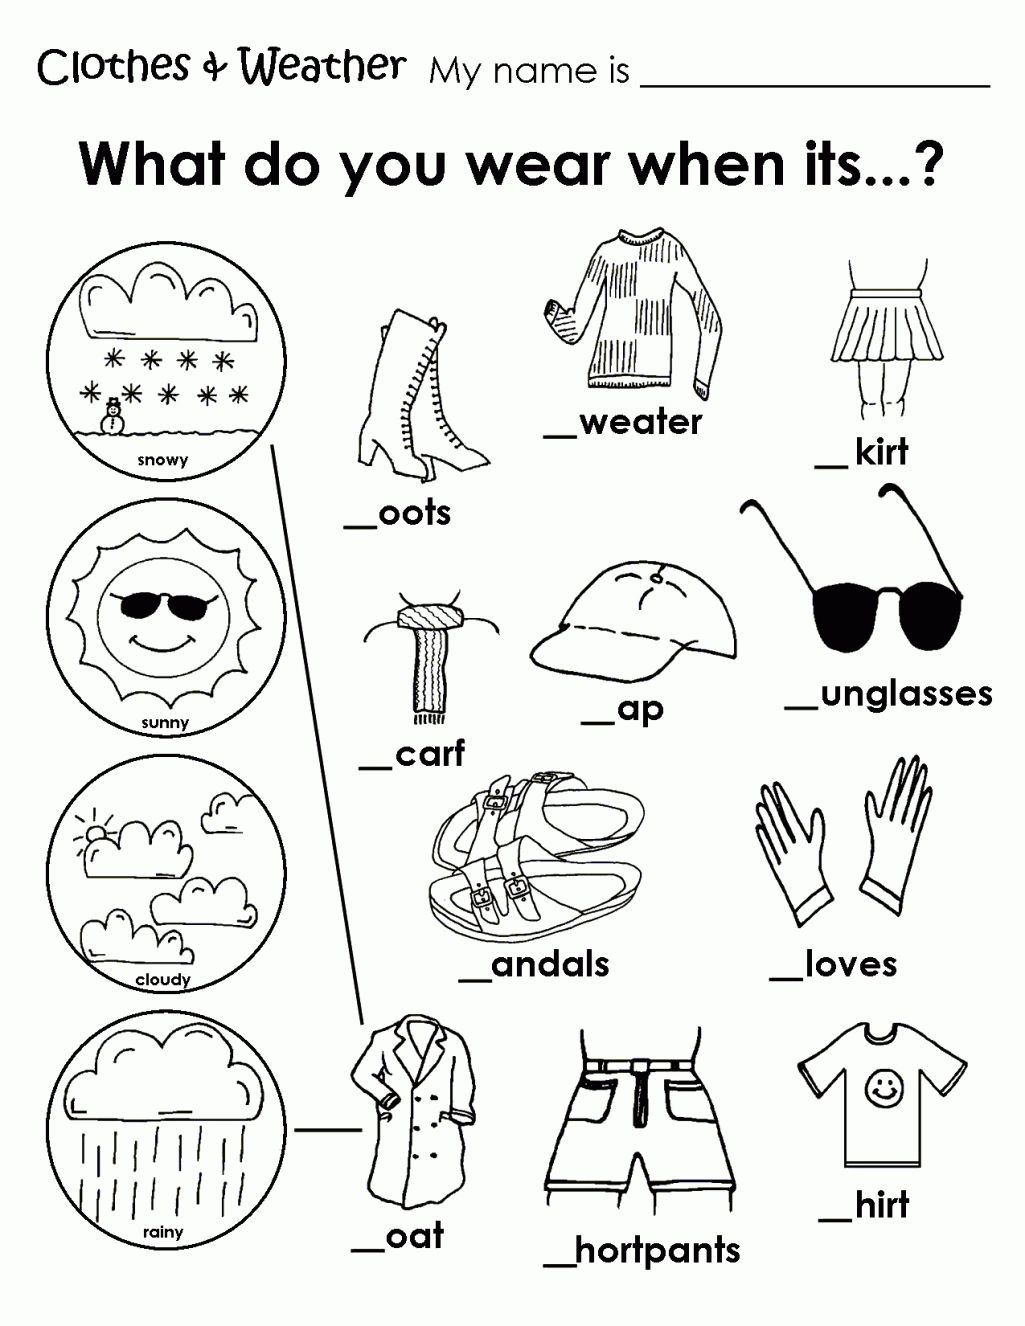 Printable Weather Clothes Worksheet | Memory Care Activities - Free Printable Seasons Worksheets For Kindergarten